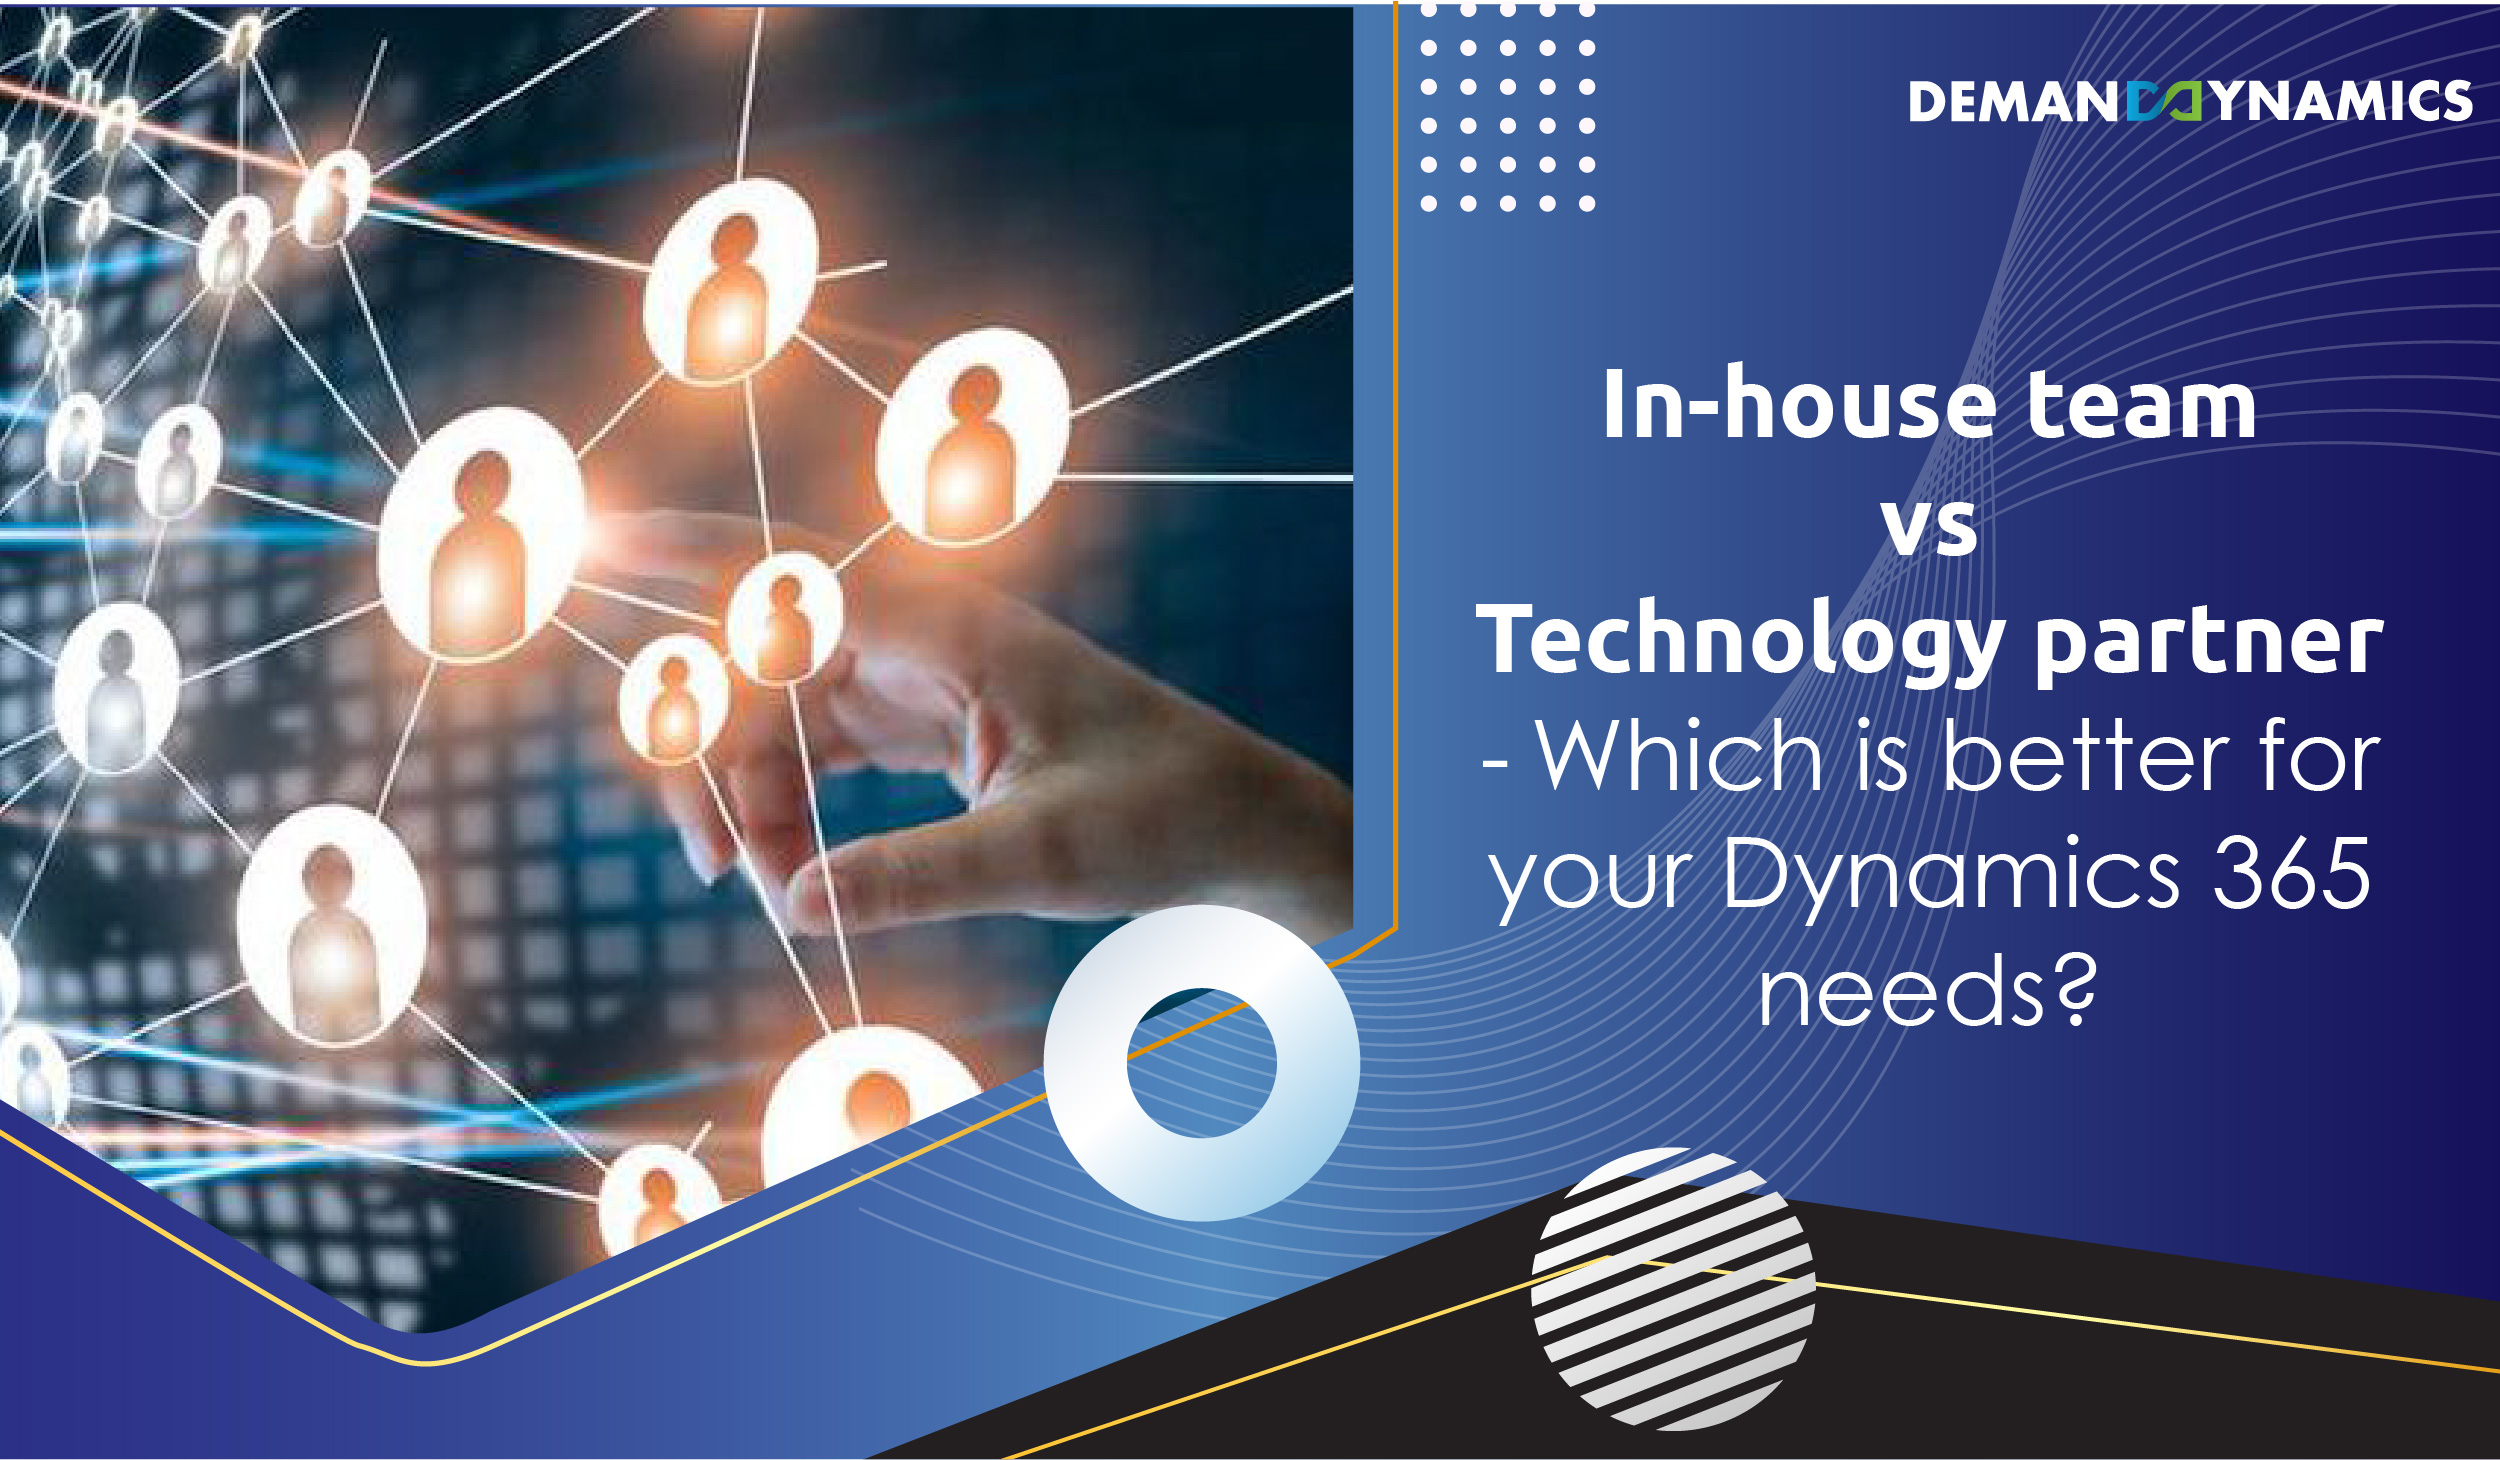 In-house team vs. Technology partner – Which is better for your Dynamics 365 needs?